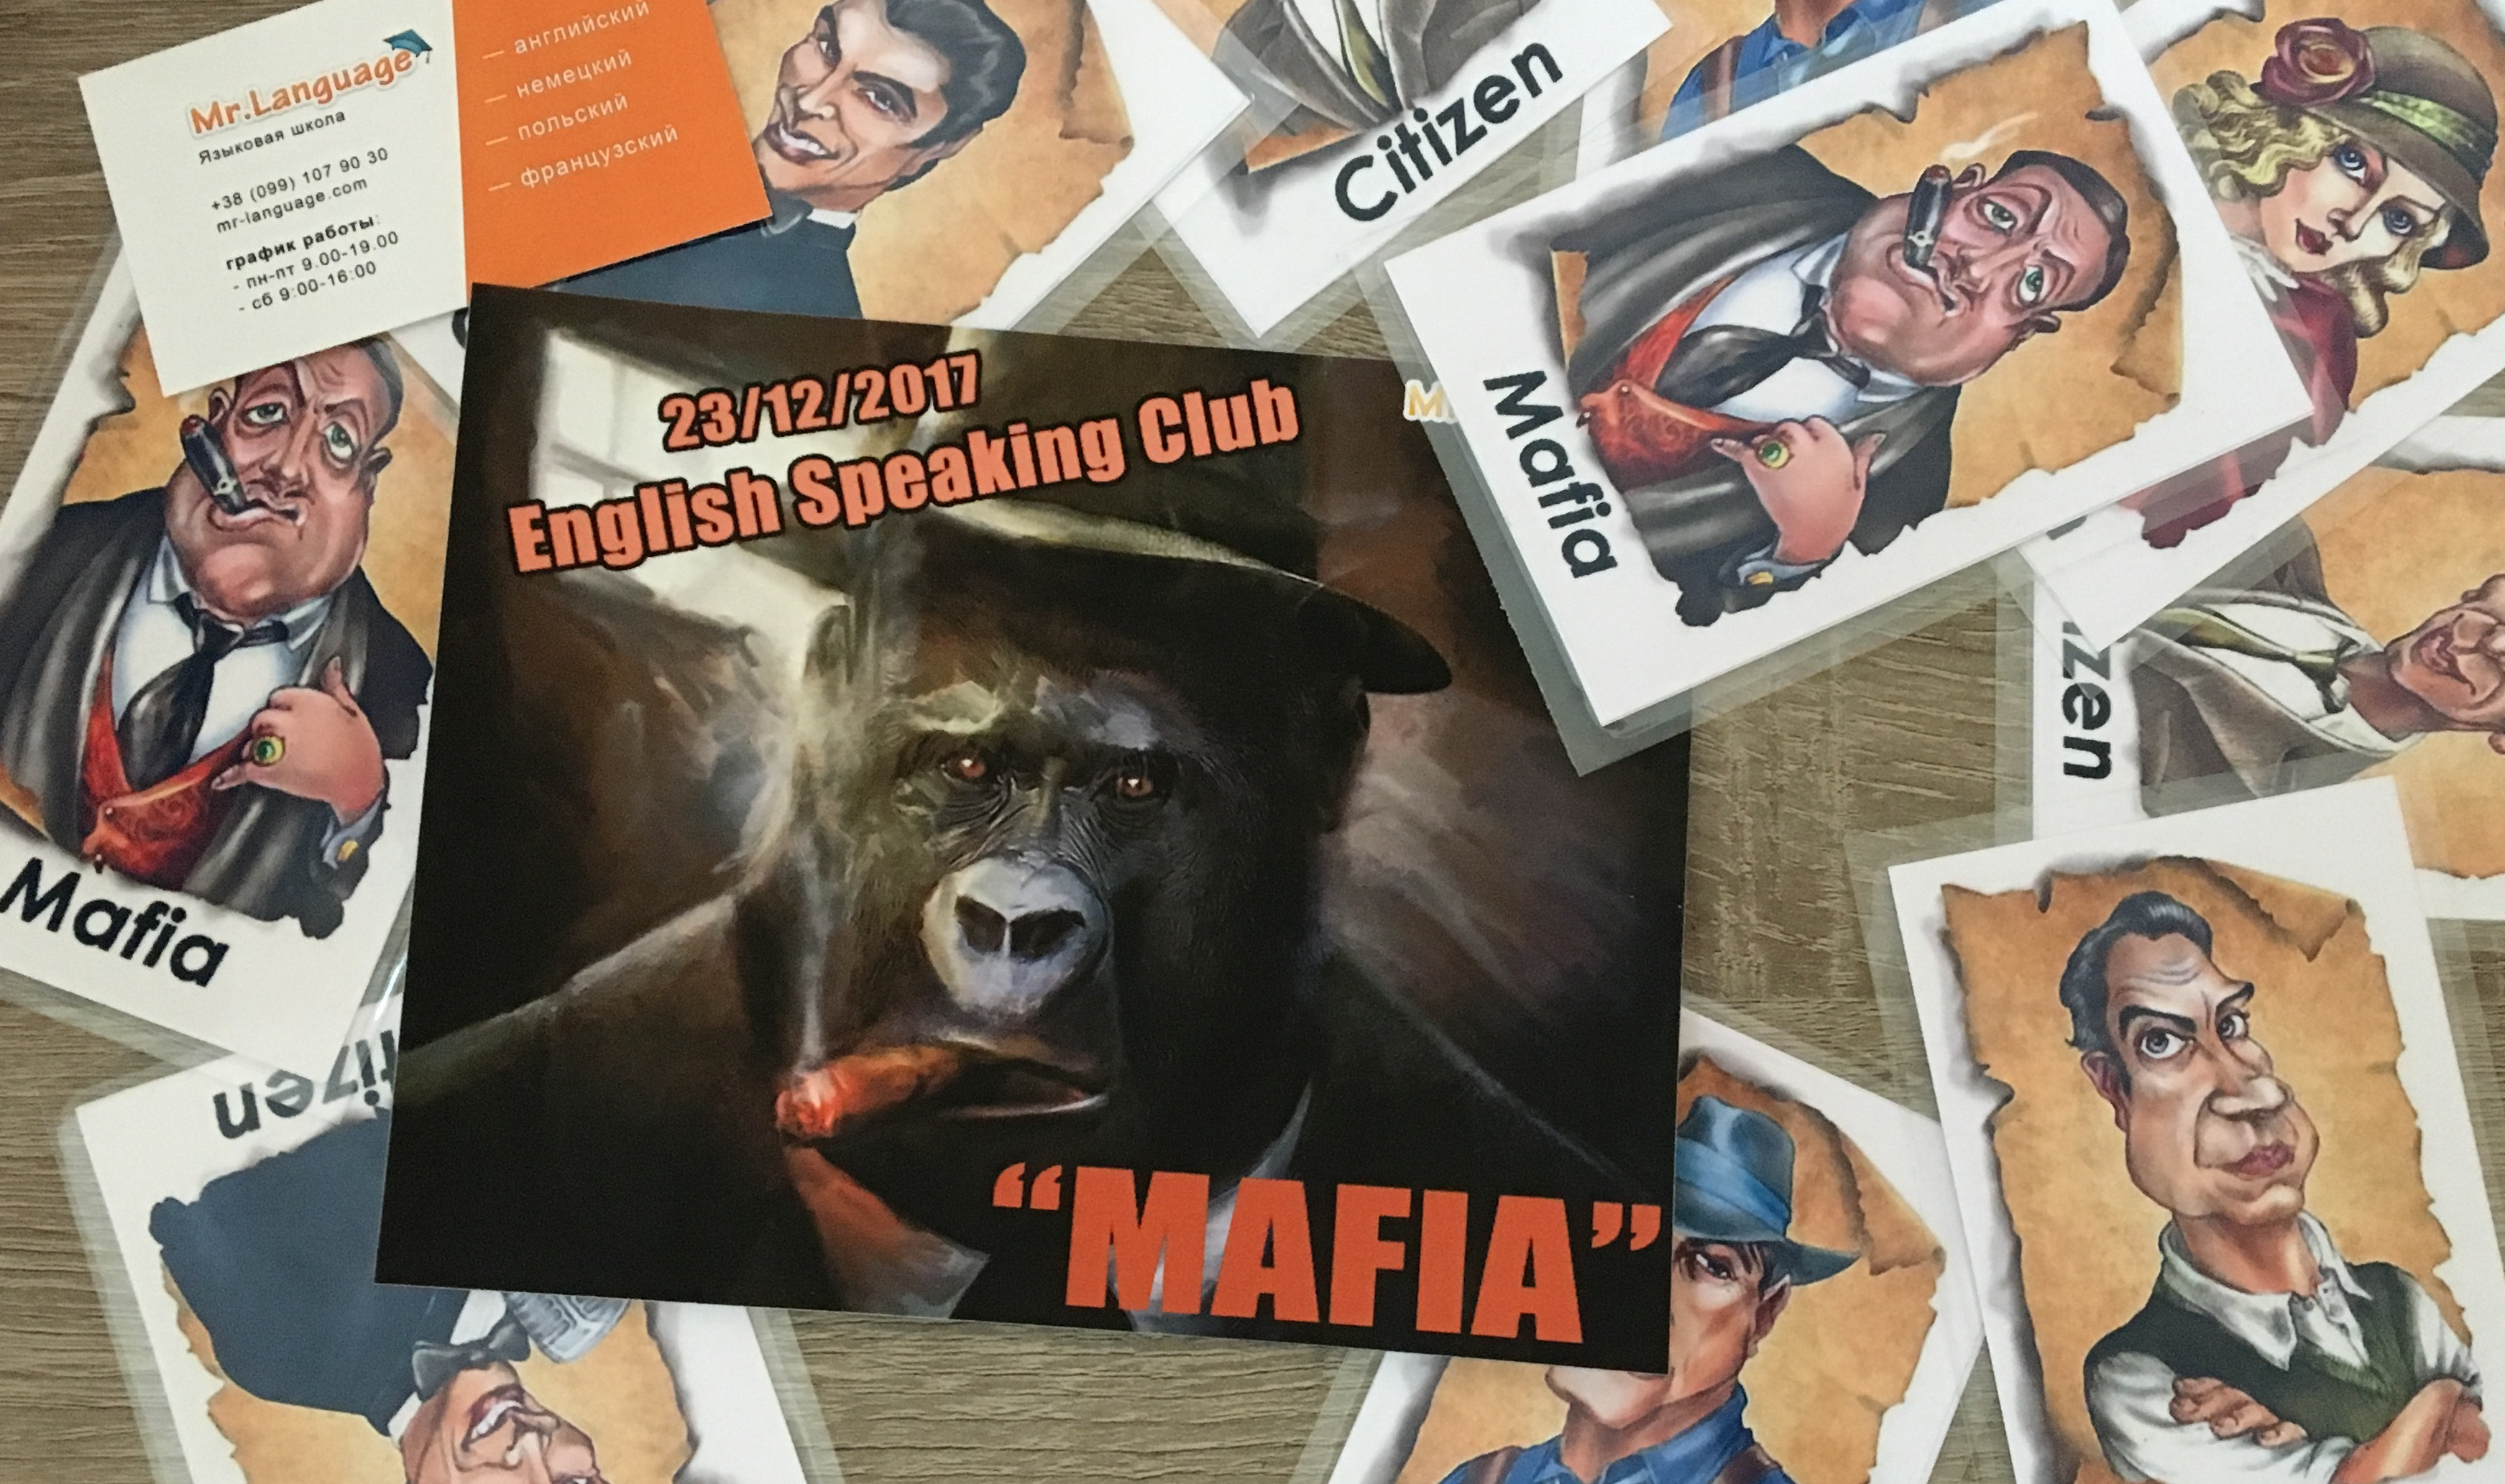 English Speaking Club — Mafia